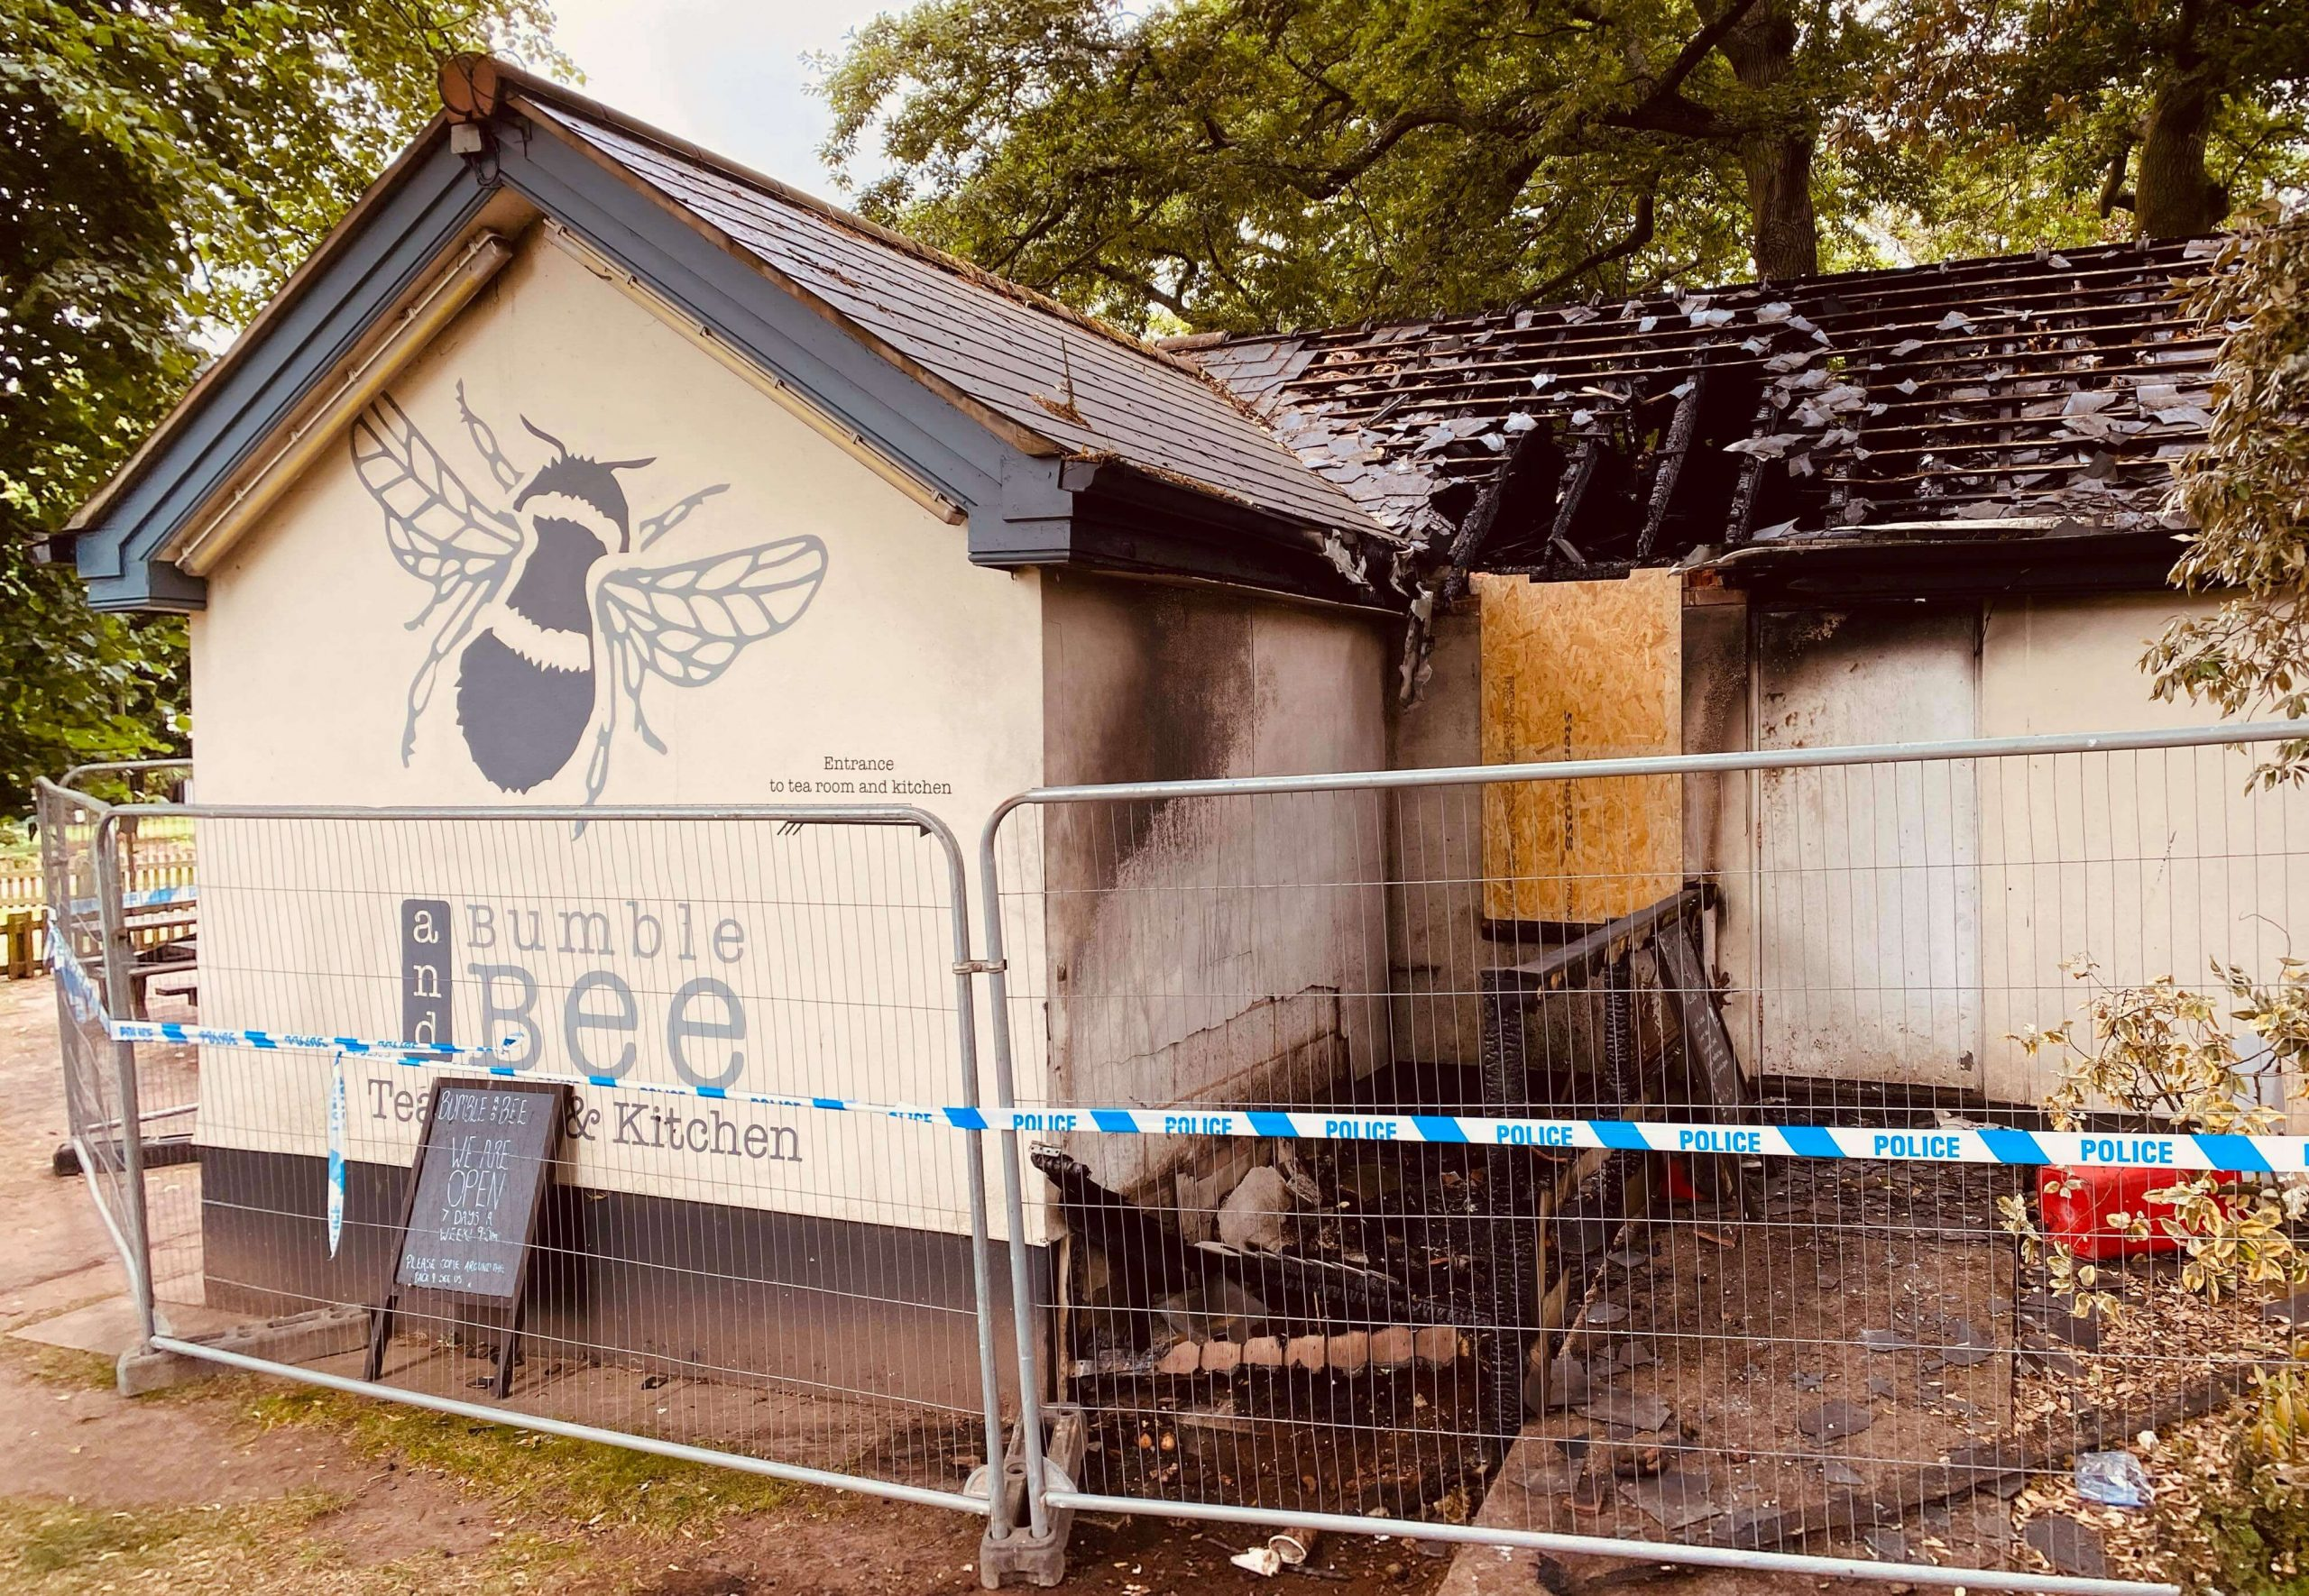 The damage at Bumble and Bee in Exmouth. Picture: Darrell Trigs